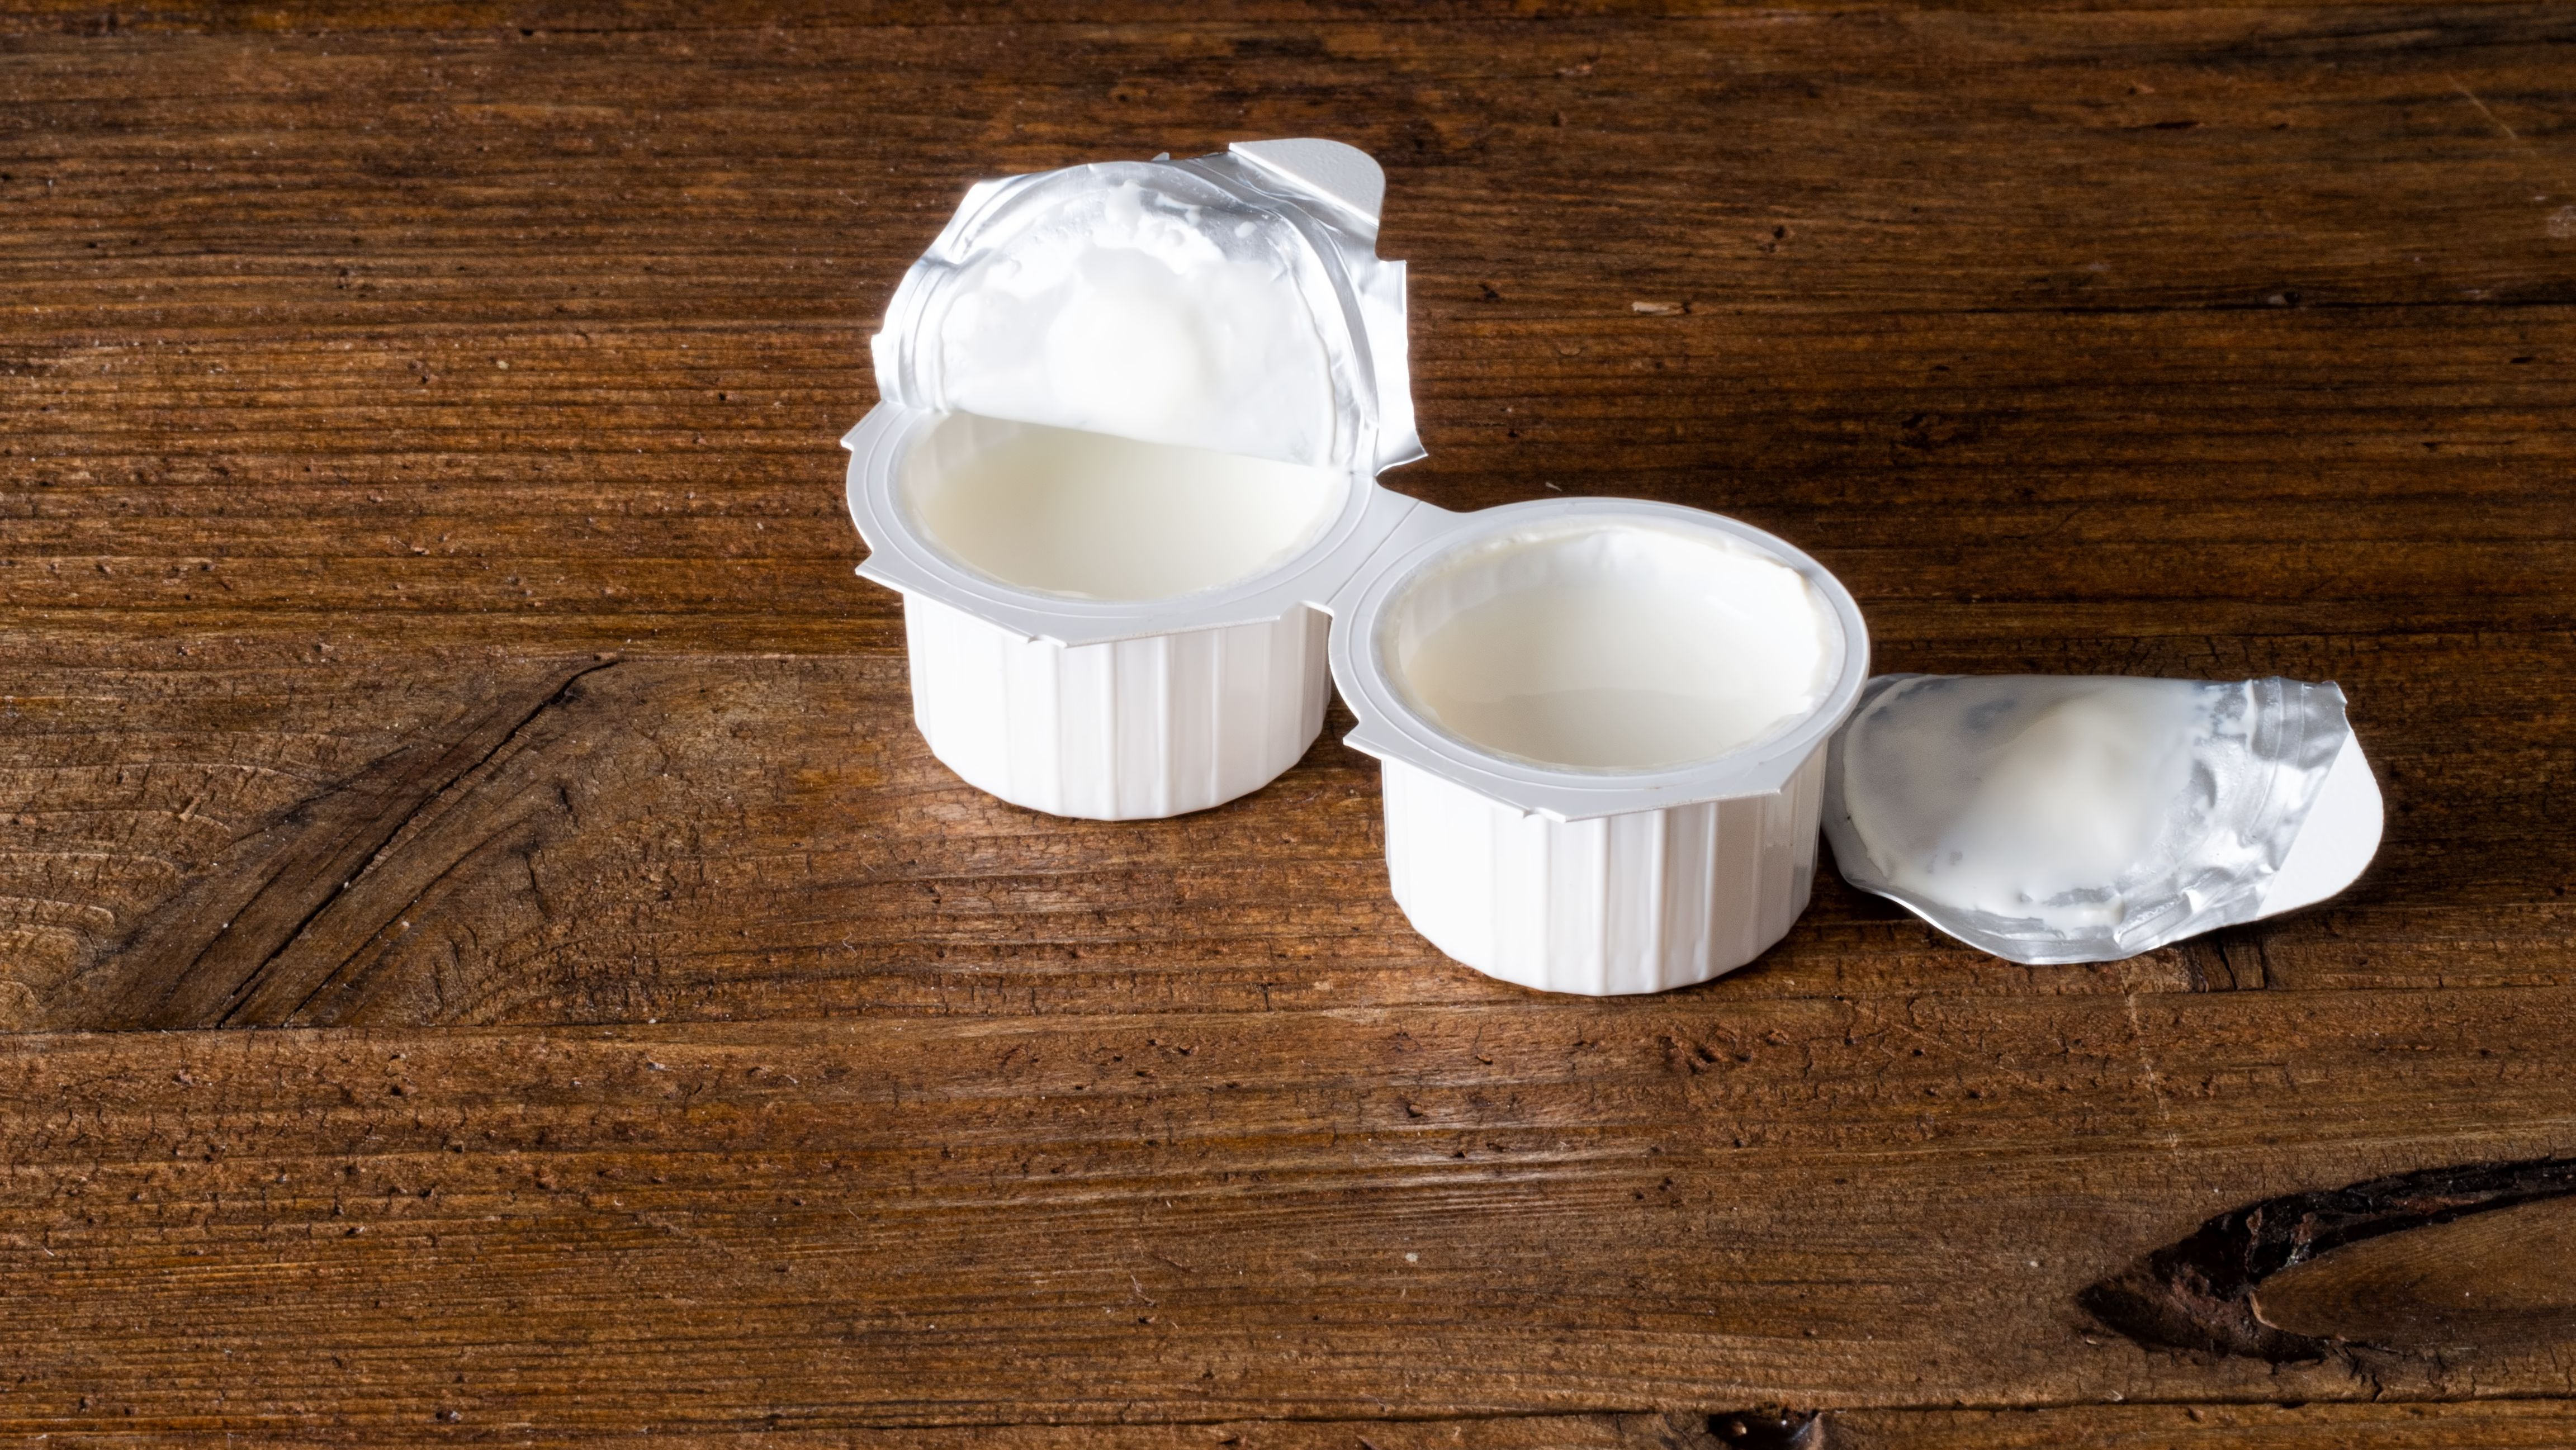 Do Little Half and Half Creamers Ever Go Bad? | Mental Floss